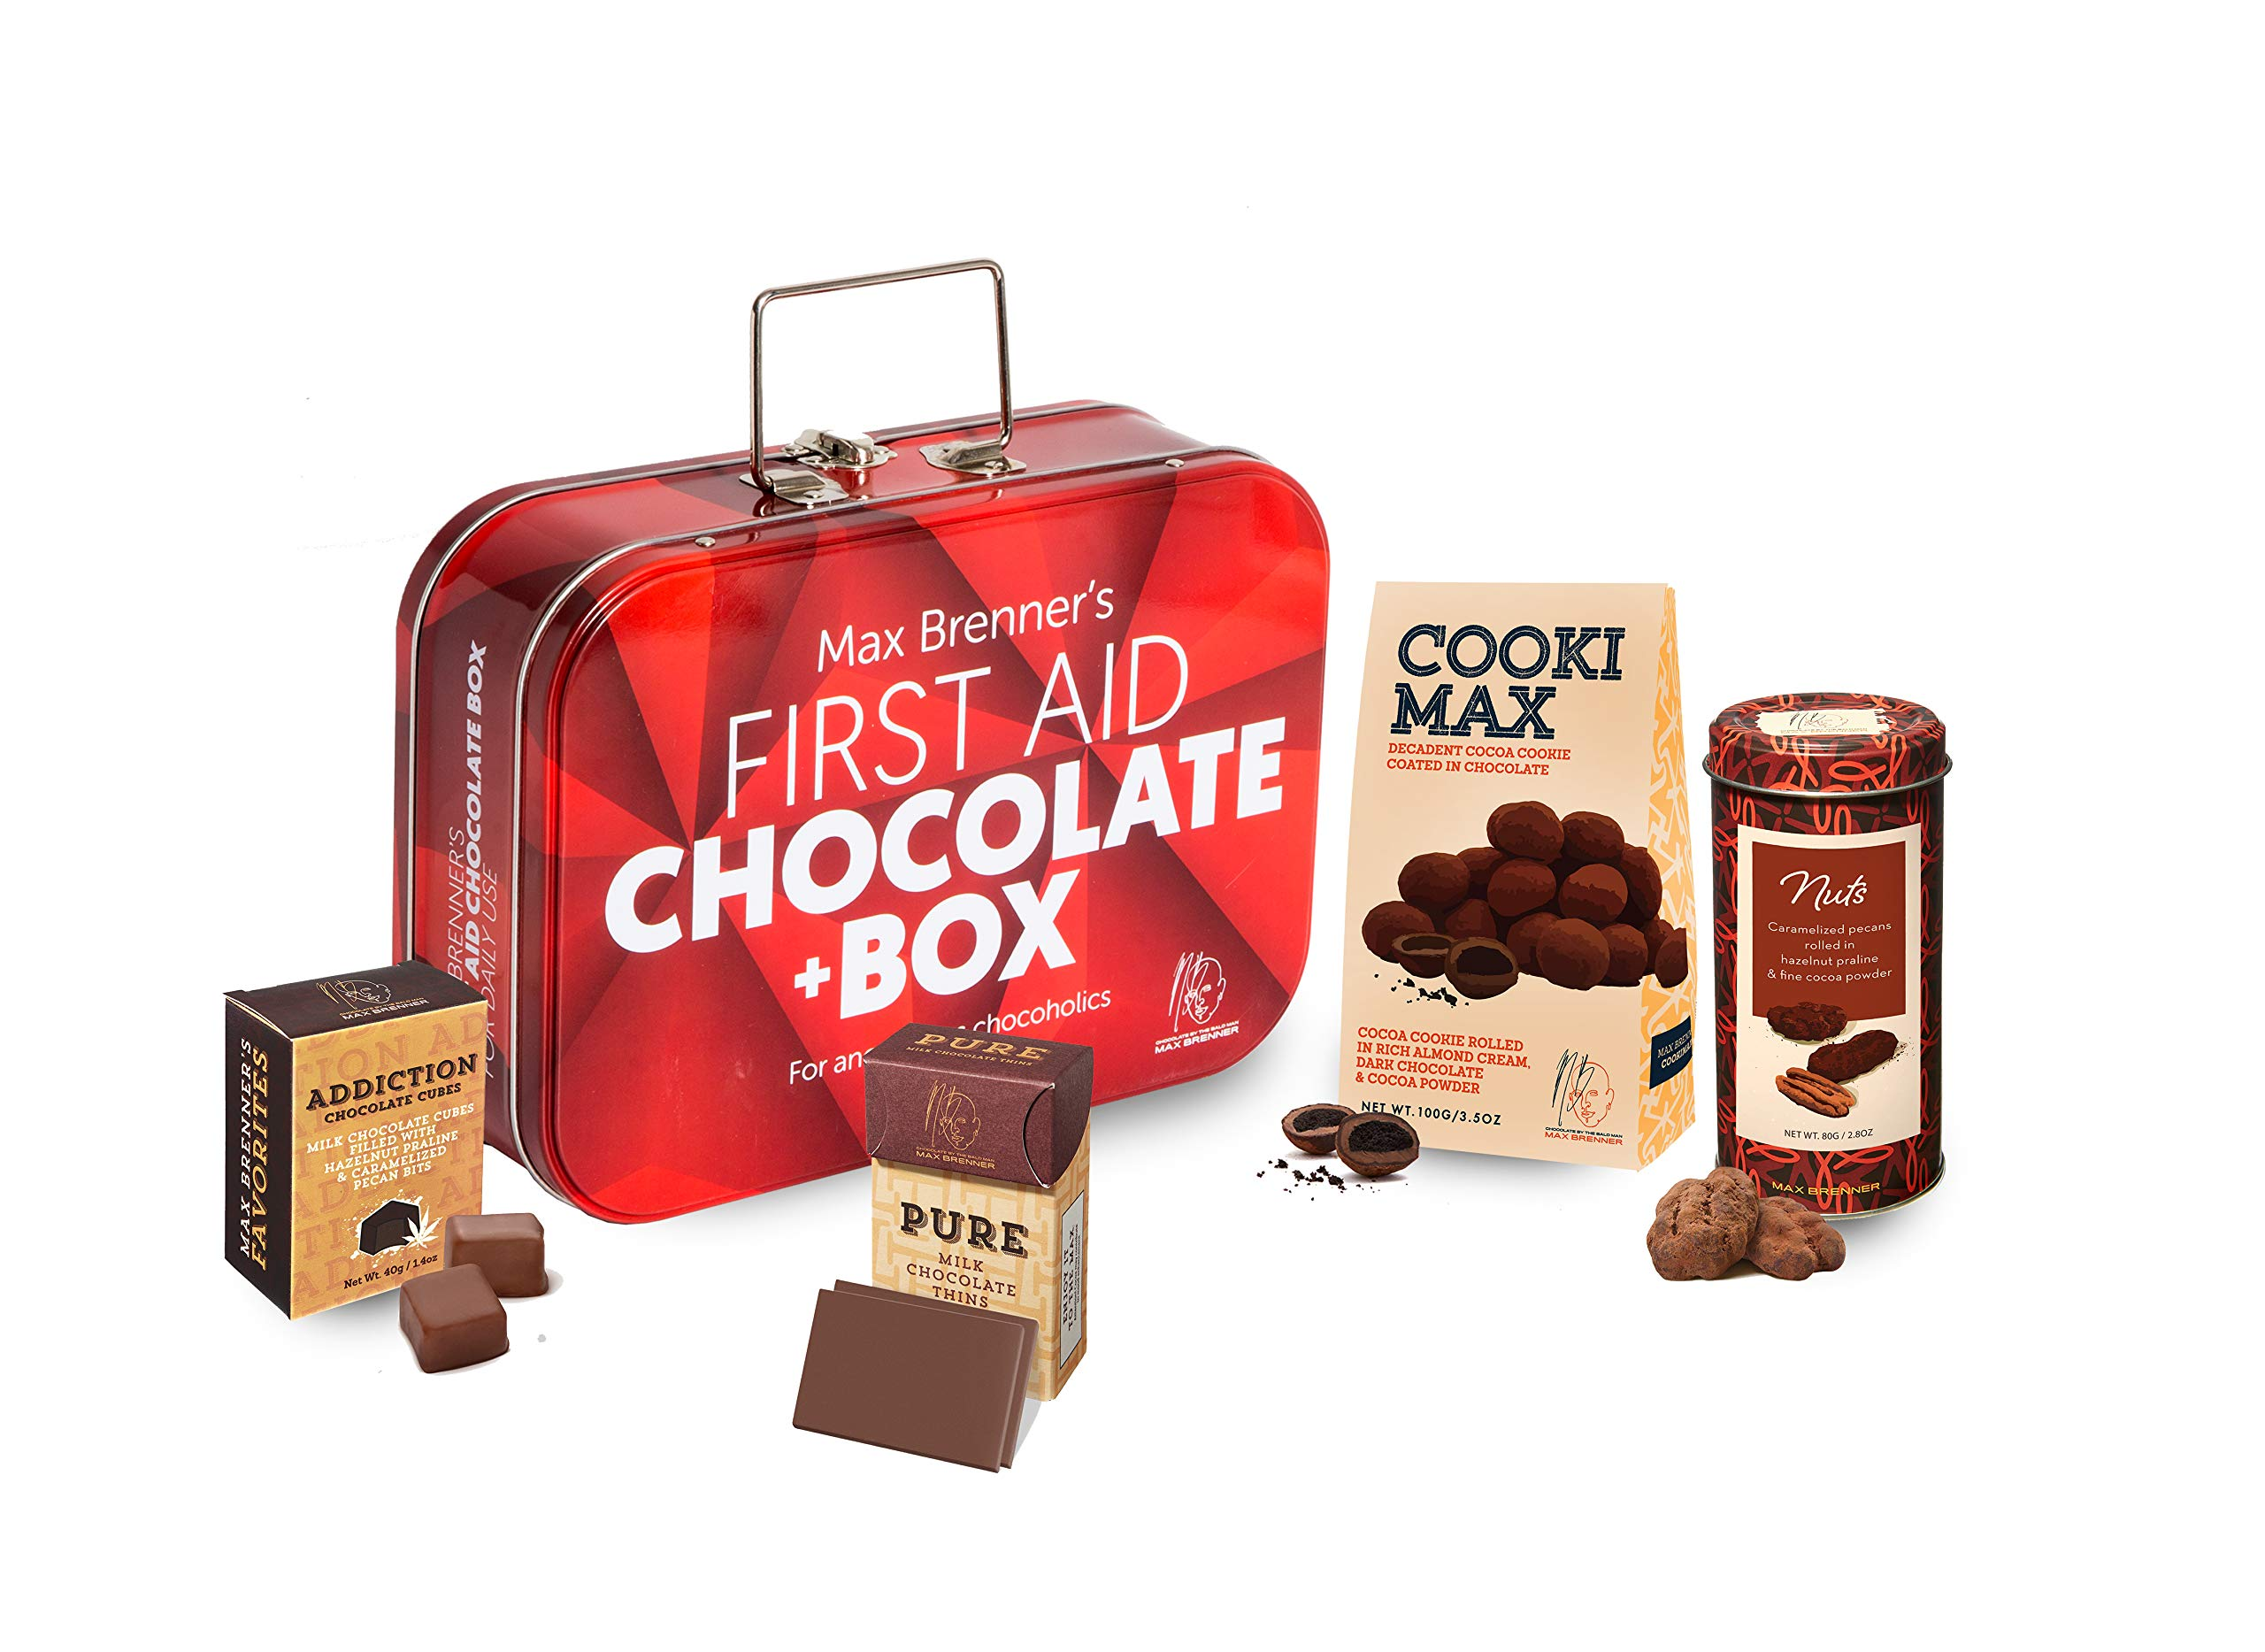 First Aid Chocolate Gift Box: Rectangular Tin with Latch and Handle includes Cookie Max Dark, Pecan Nuts, Pure Milk, and Addiction Cubes by Max Brenner - Kosher by Max Brenner